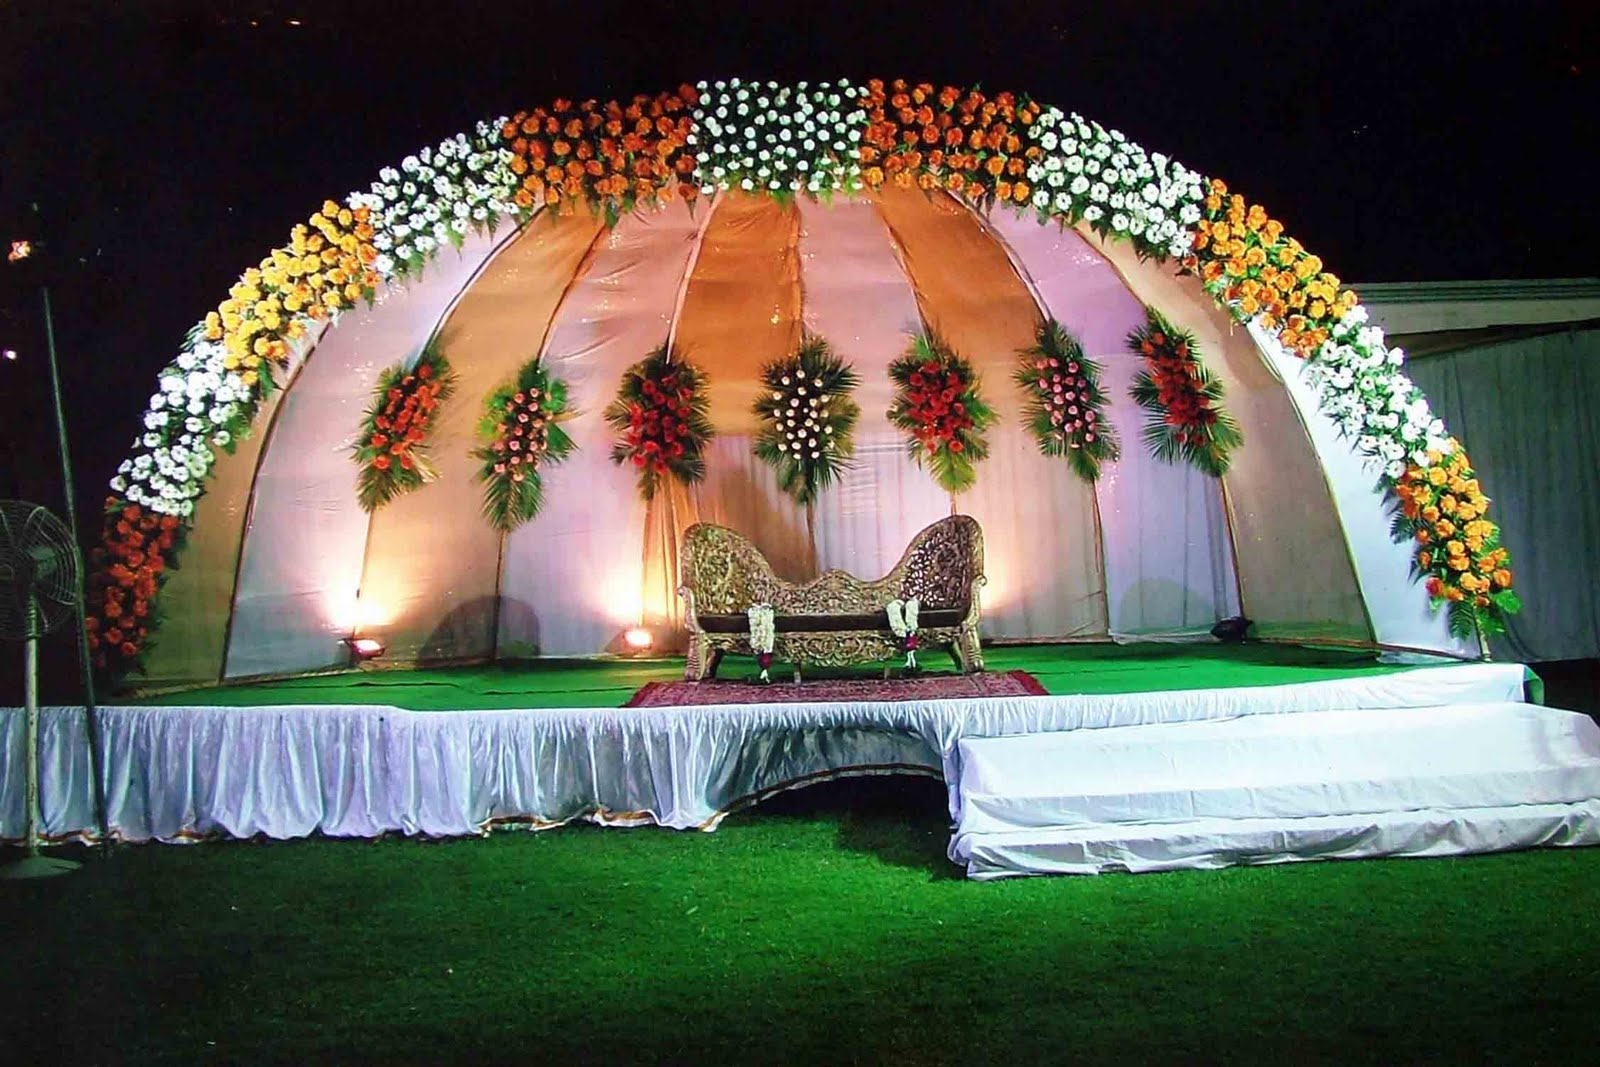 Stage decoration images for wedding : Flower decorations wedding stage